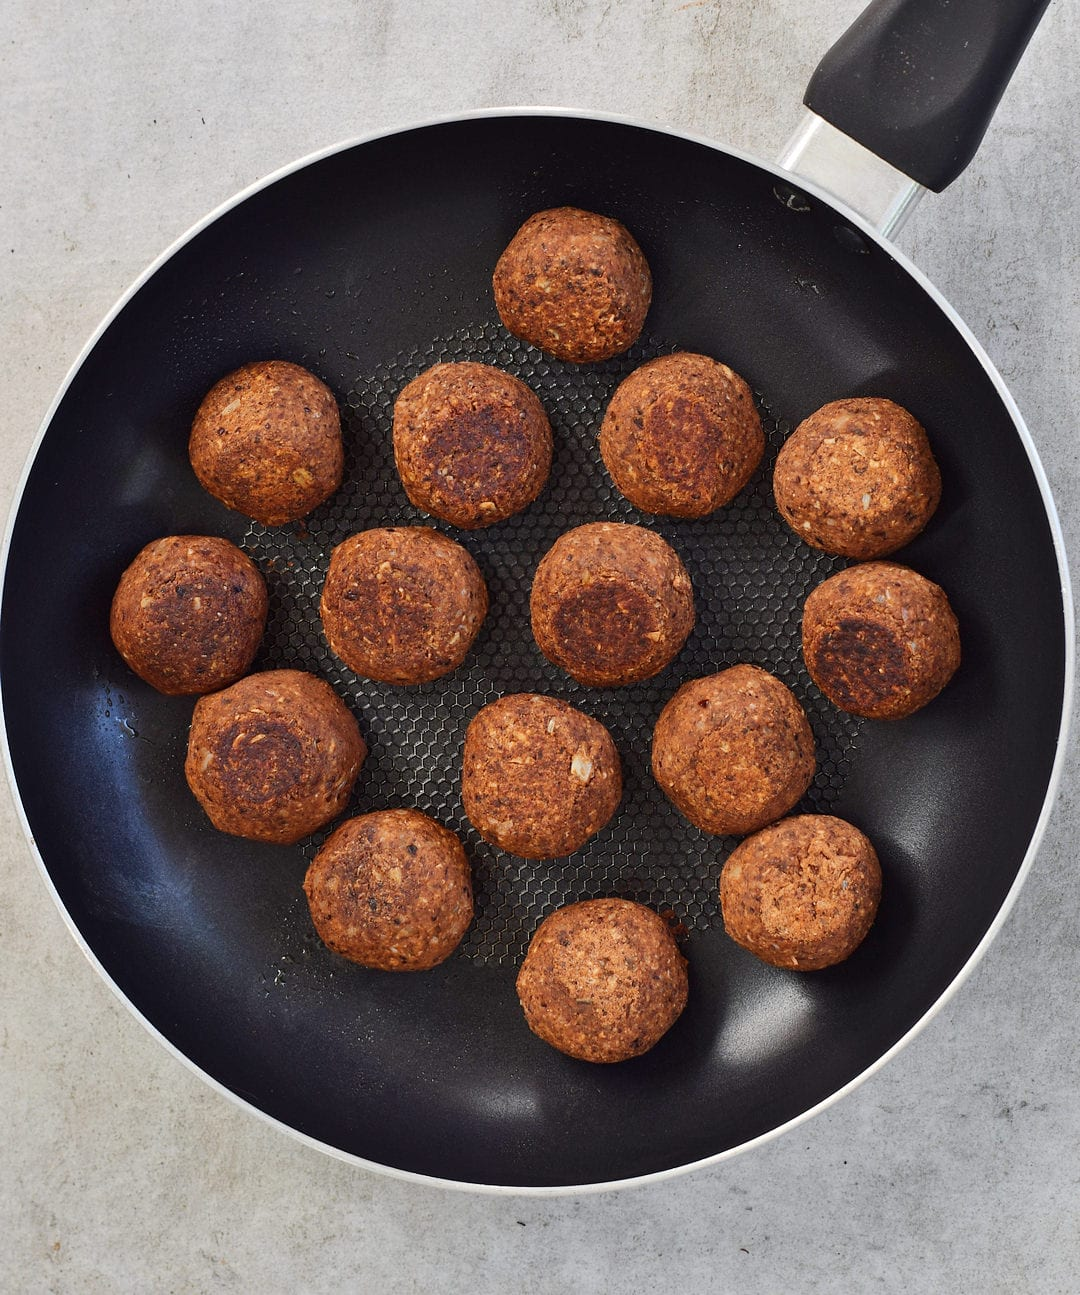 Vegan meatballs in a skillet